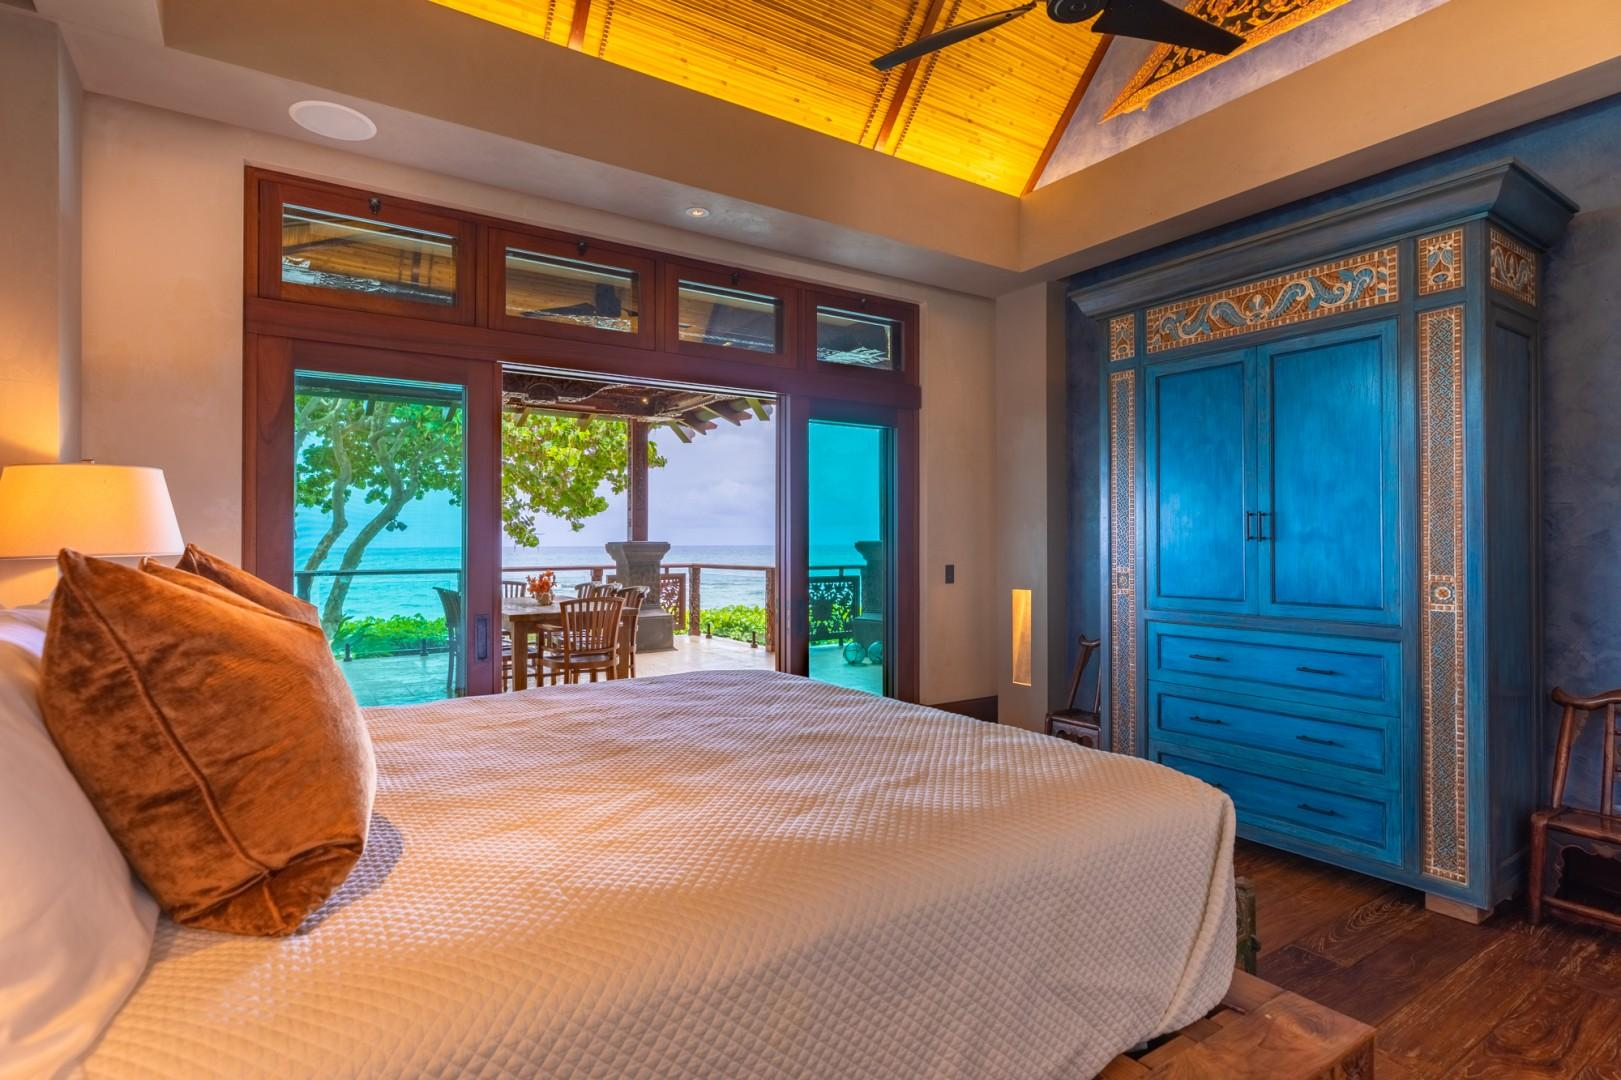 Guest Bedroom with ocean views and lanai access